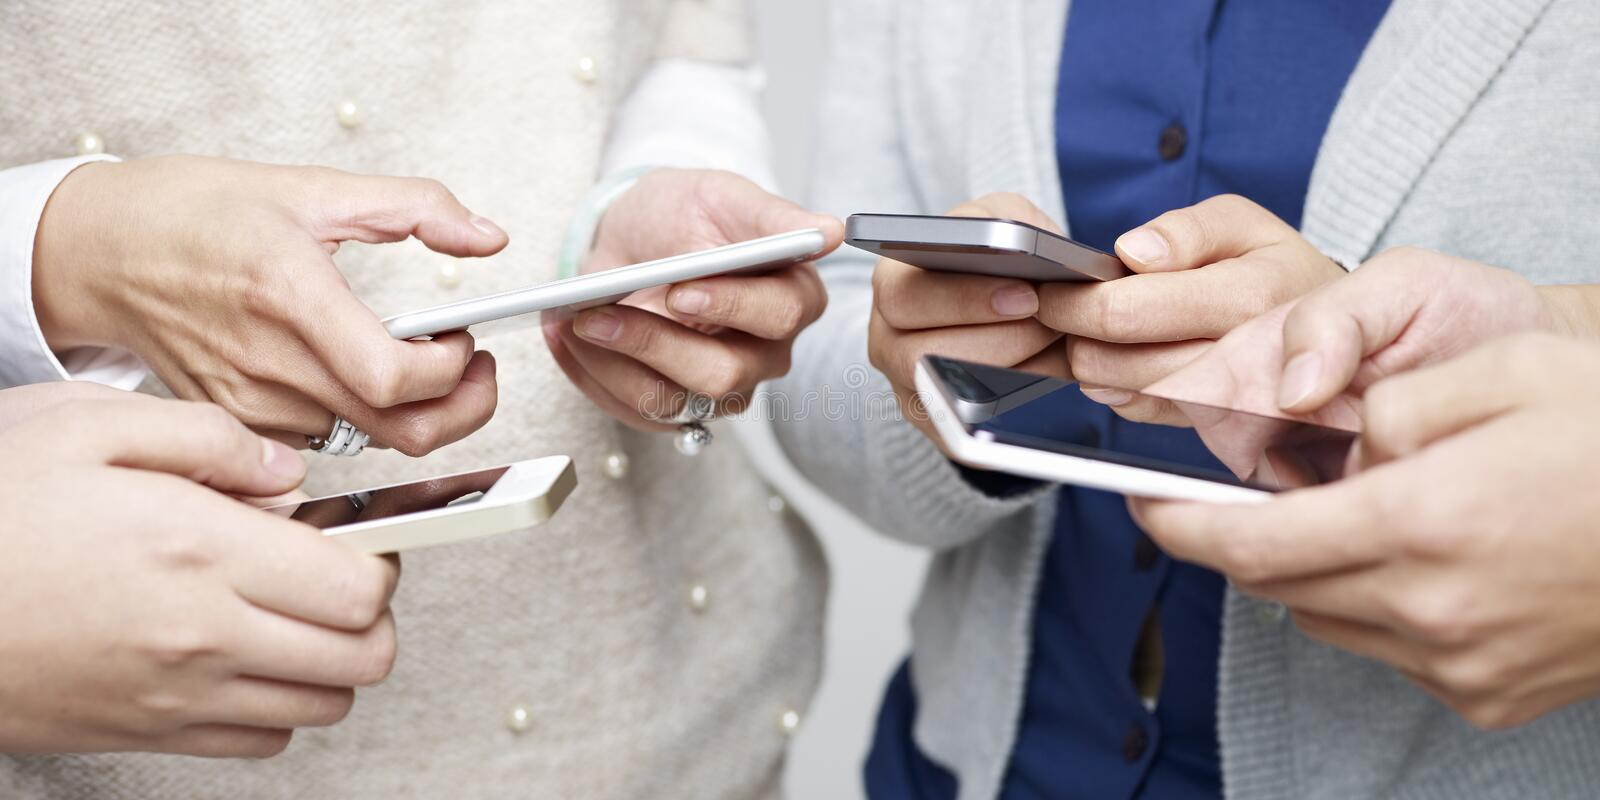 People using cellphone. Small group of people using cellphones together